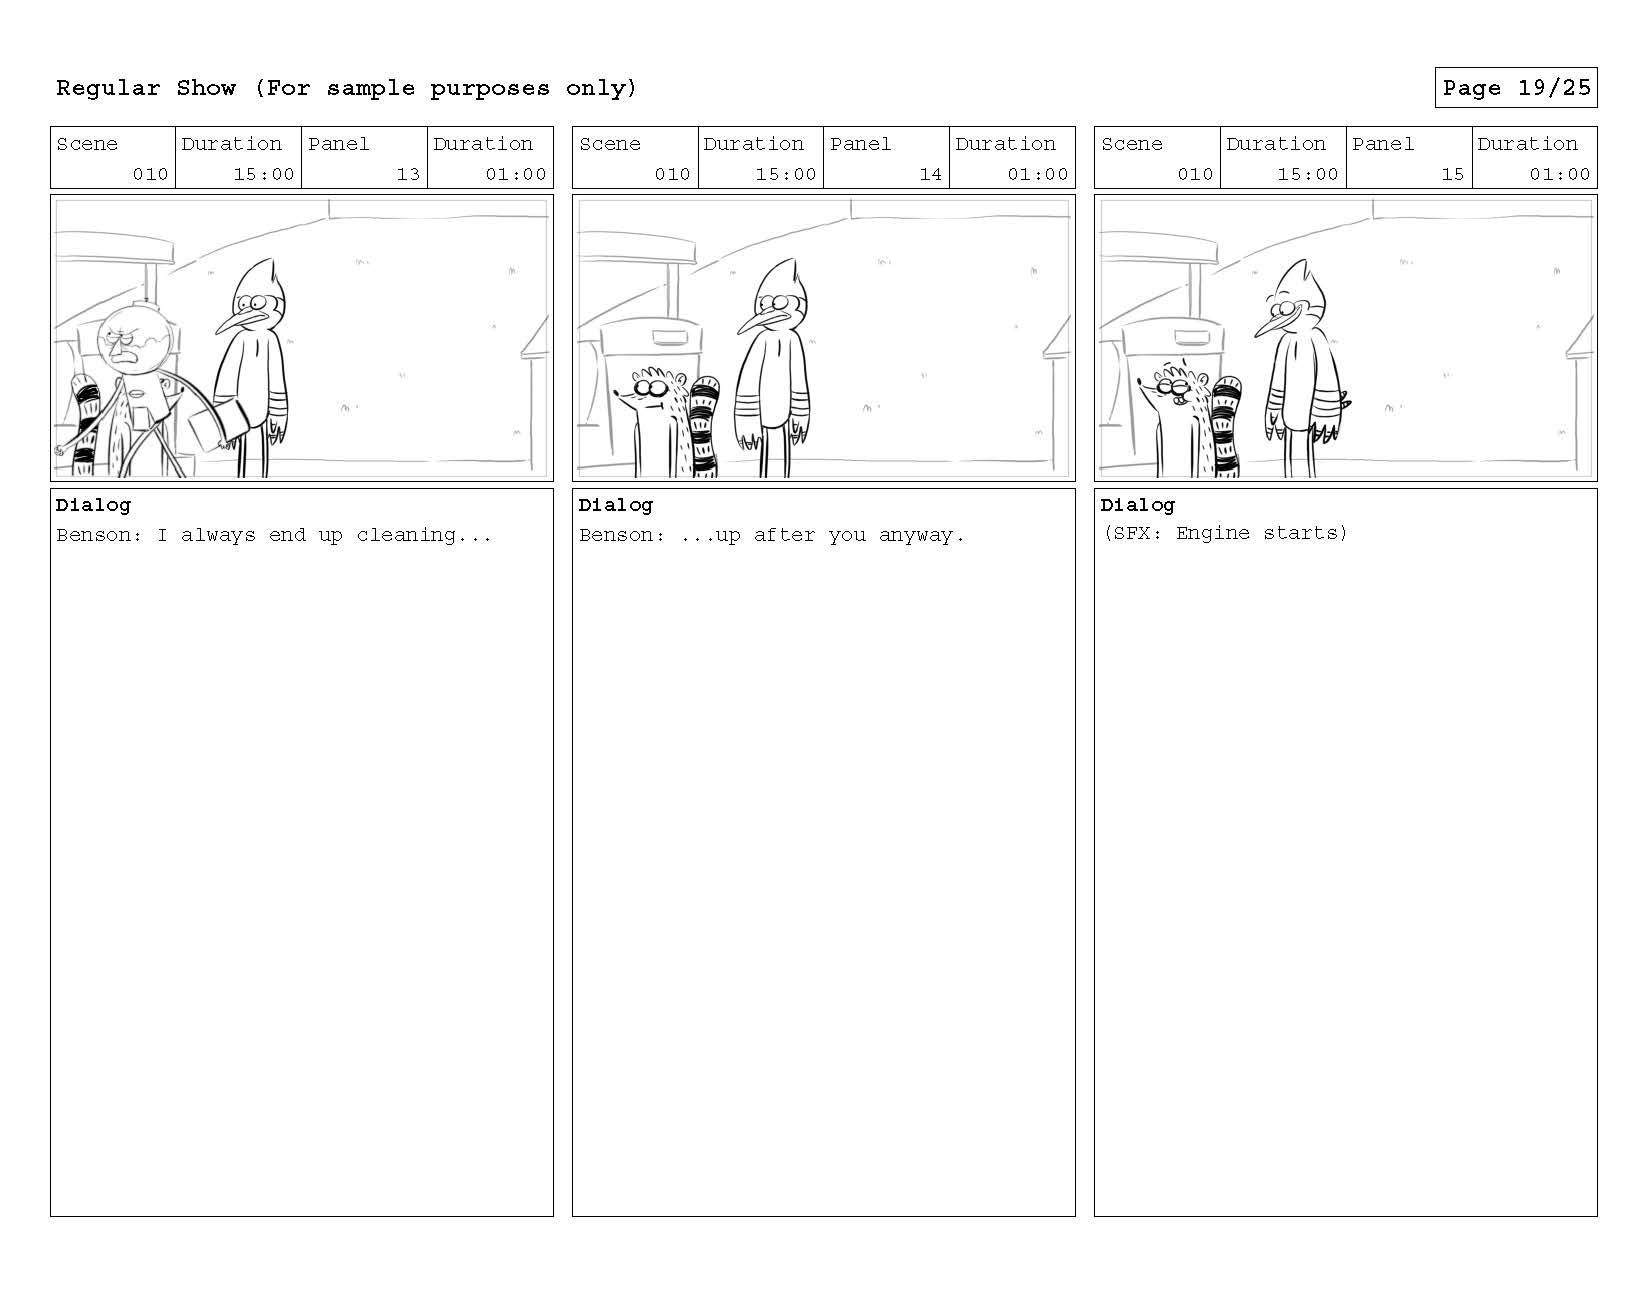 thelfer_rs_sample_Page_20.jpg